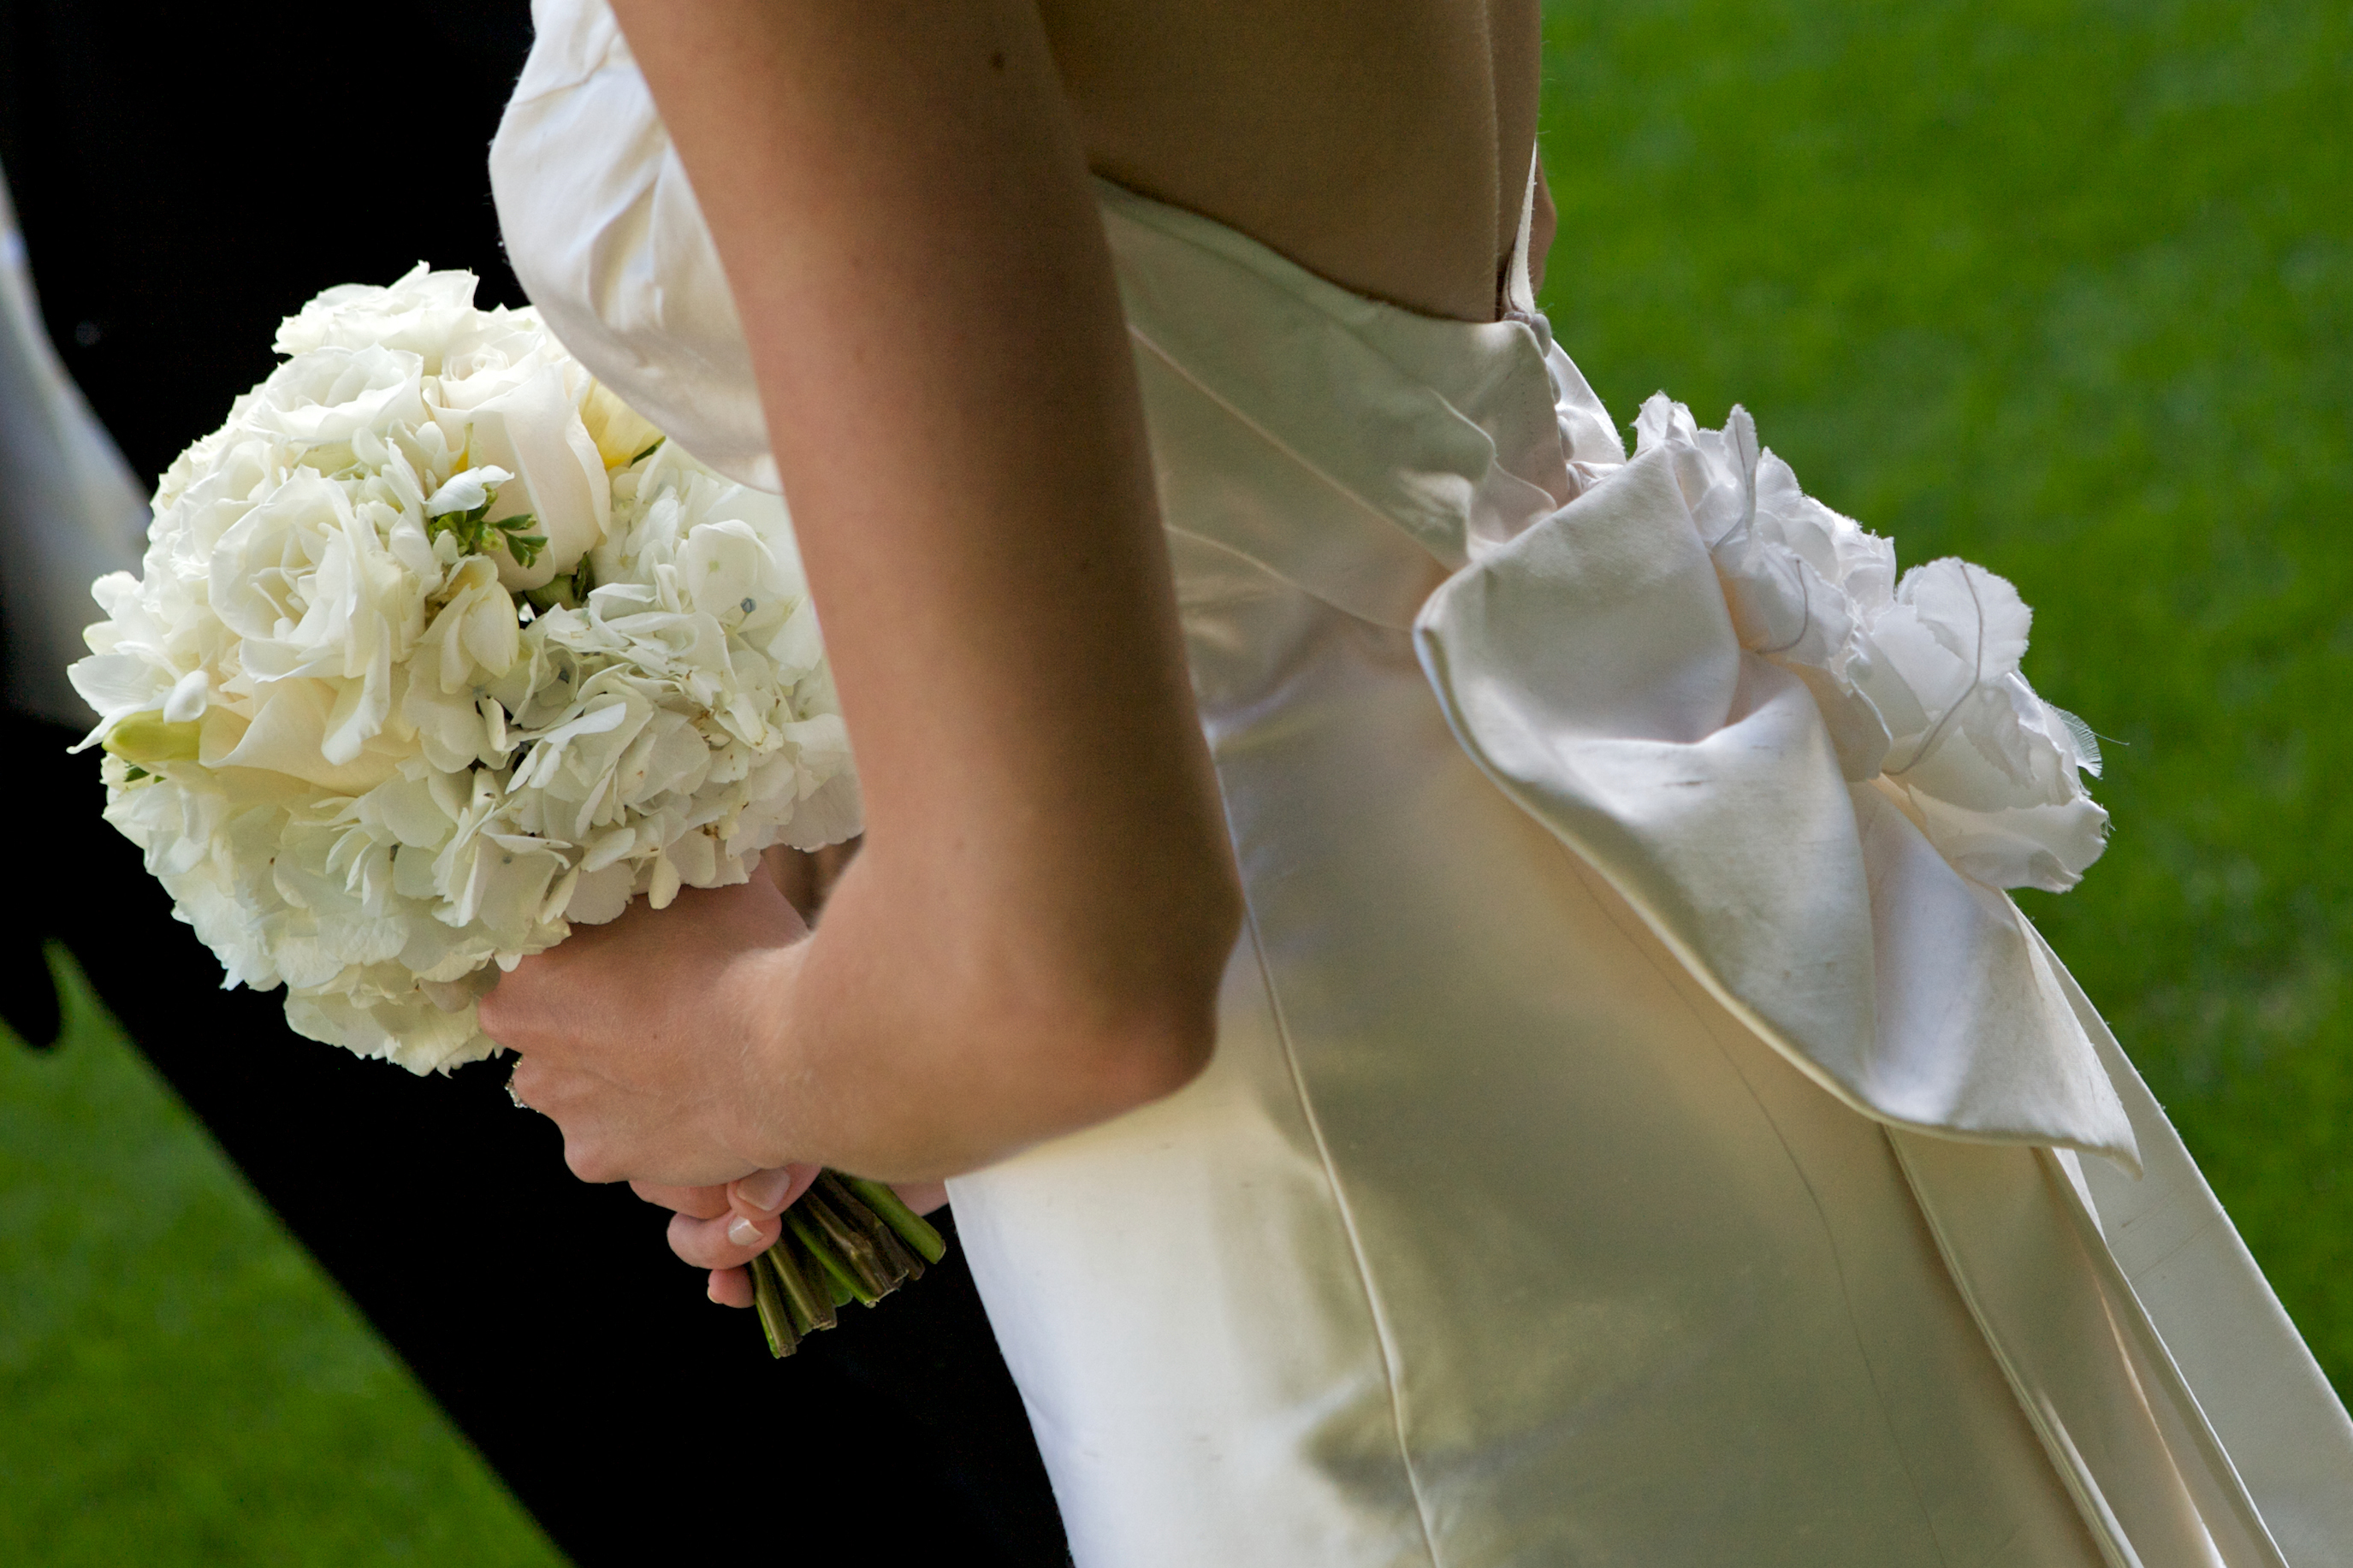 white, Bouquet, Bridal, Elegant, Handtie, Town and country gardens